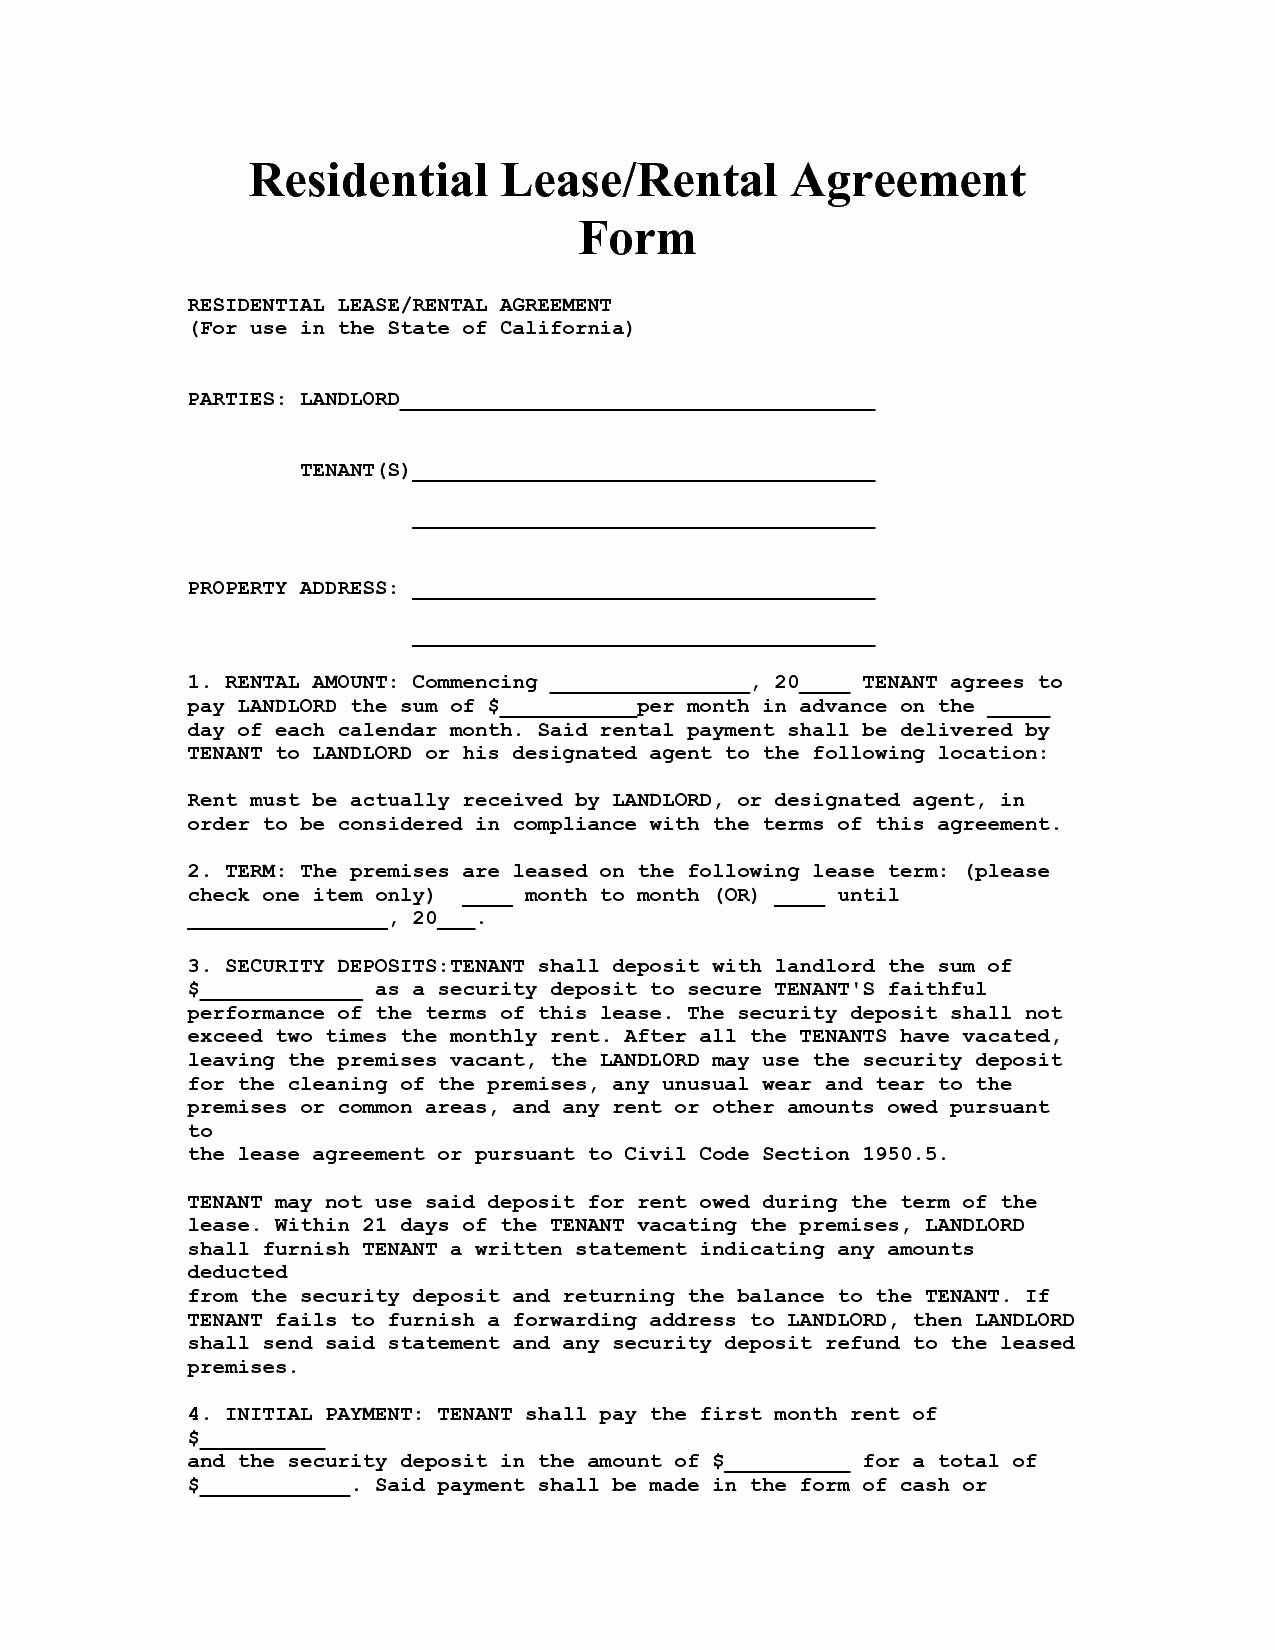 Temporary Guardianship Form Illinois Luxury 14 Elegant Illinois Residential Lease Agreement Land Of Template